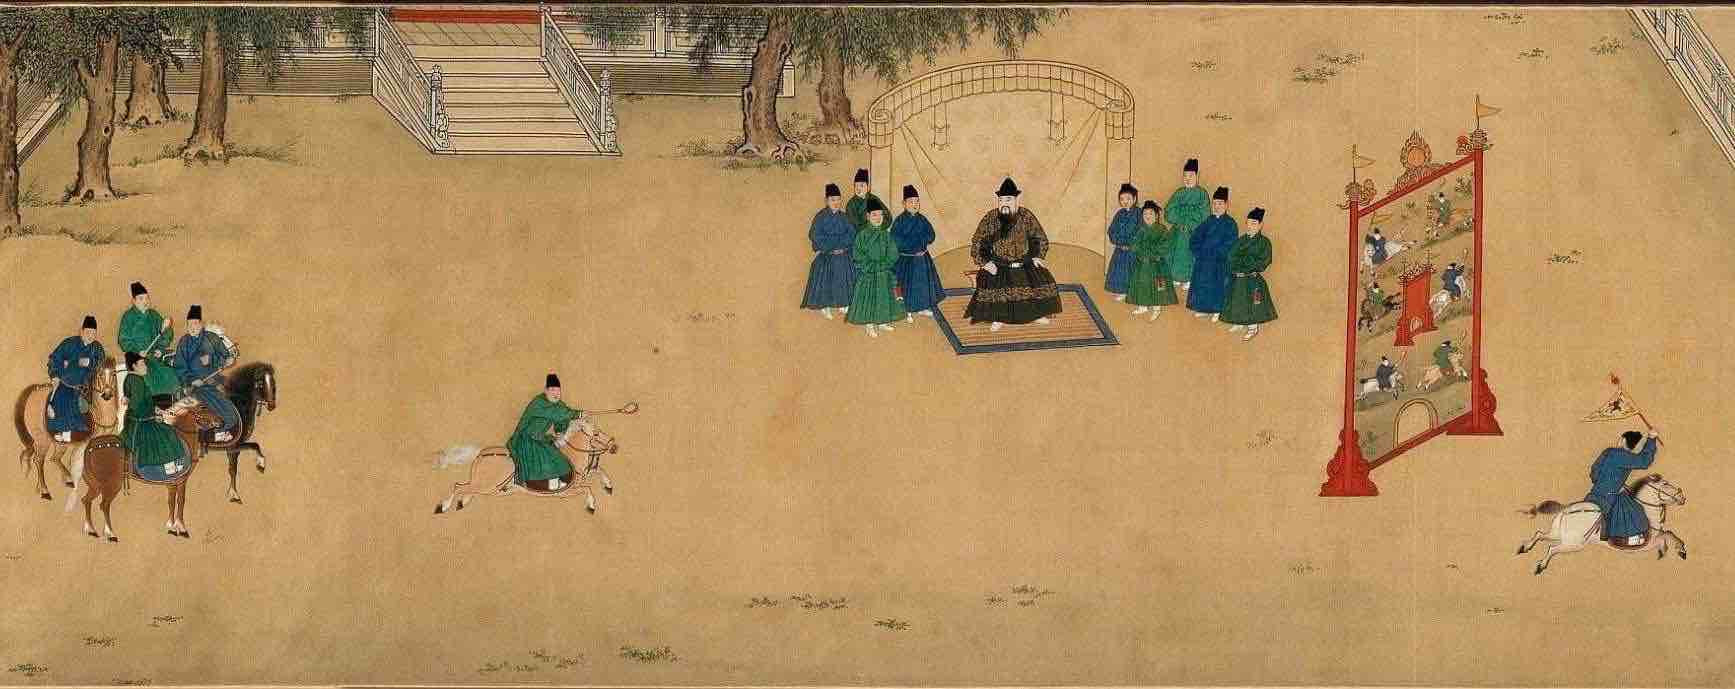 "Painting ""Zhu Zhanji Xing Le Tu"" Presenting Emperor Zhu Zhanji's Entertainment Activities in the Royal Palace Part 4"